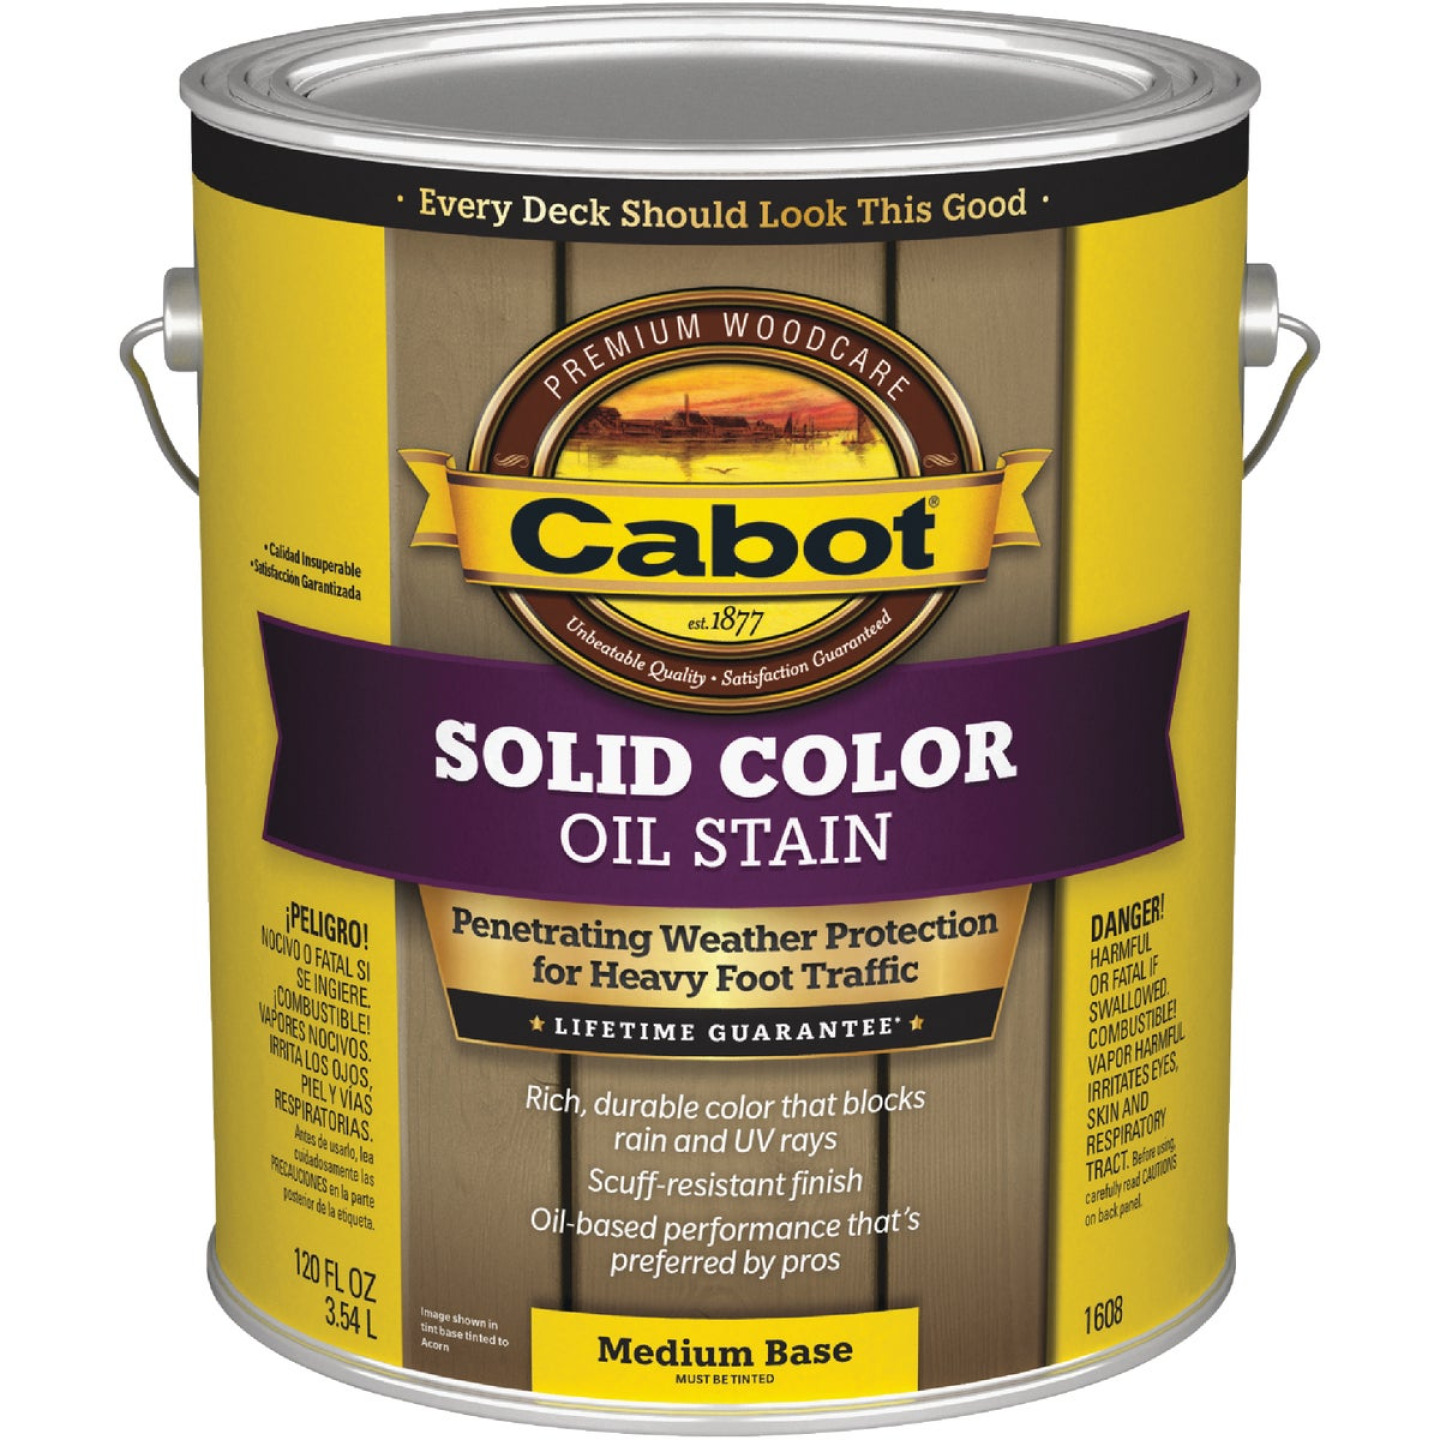 Cabot Solid Color Oil Deck Stain, Medium Base, 1 Gal. Image 1